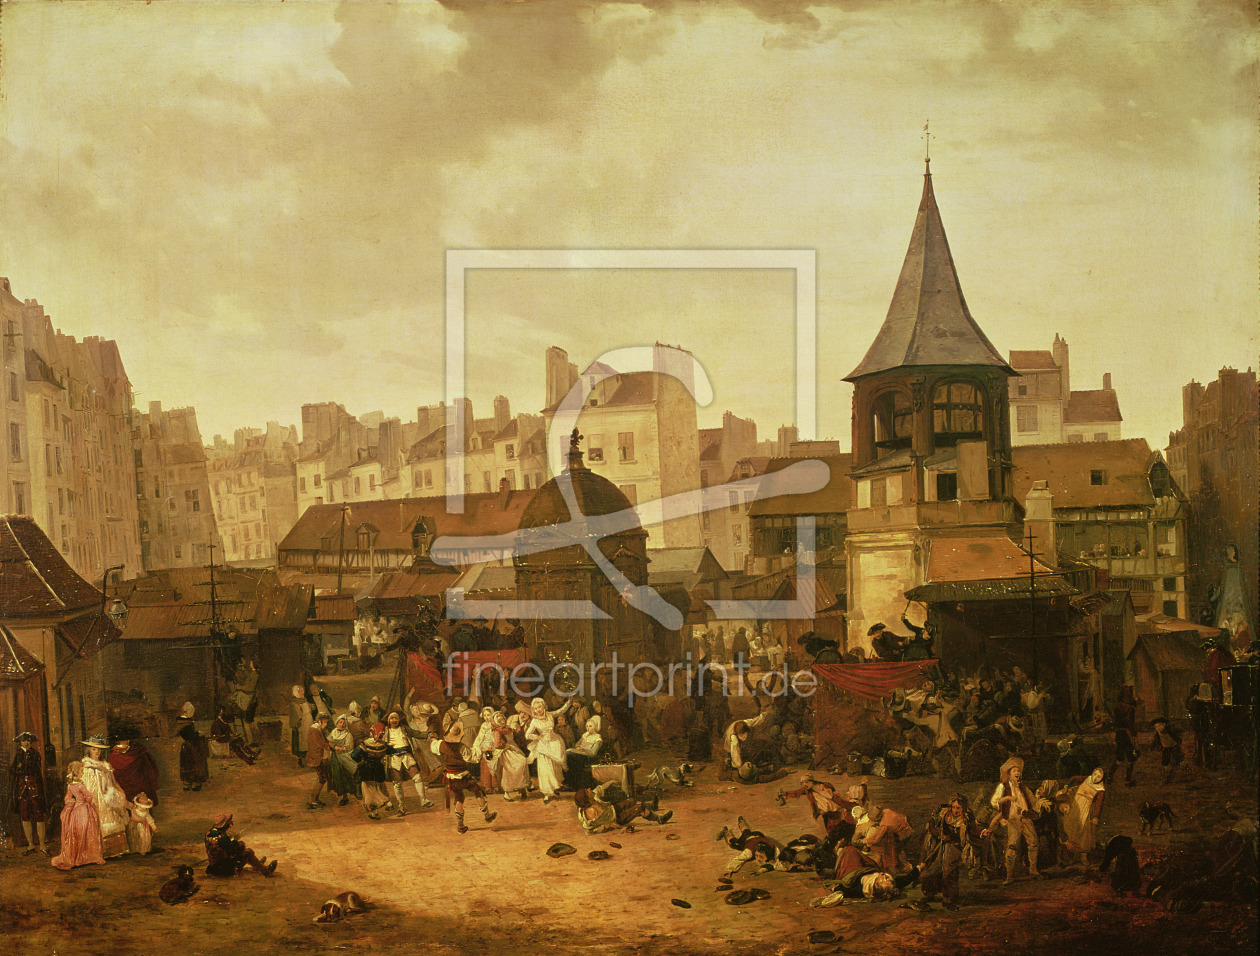 Bild-Nr.: 31001530 Rejoicing at Les Halles to Celebrate the Birth of Dauphin Louis of France 21st J erstellt von Debucourt, Philibert Louis